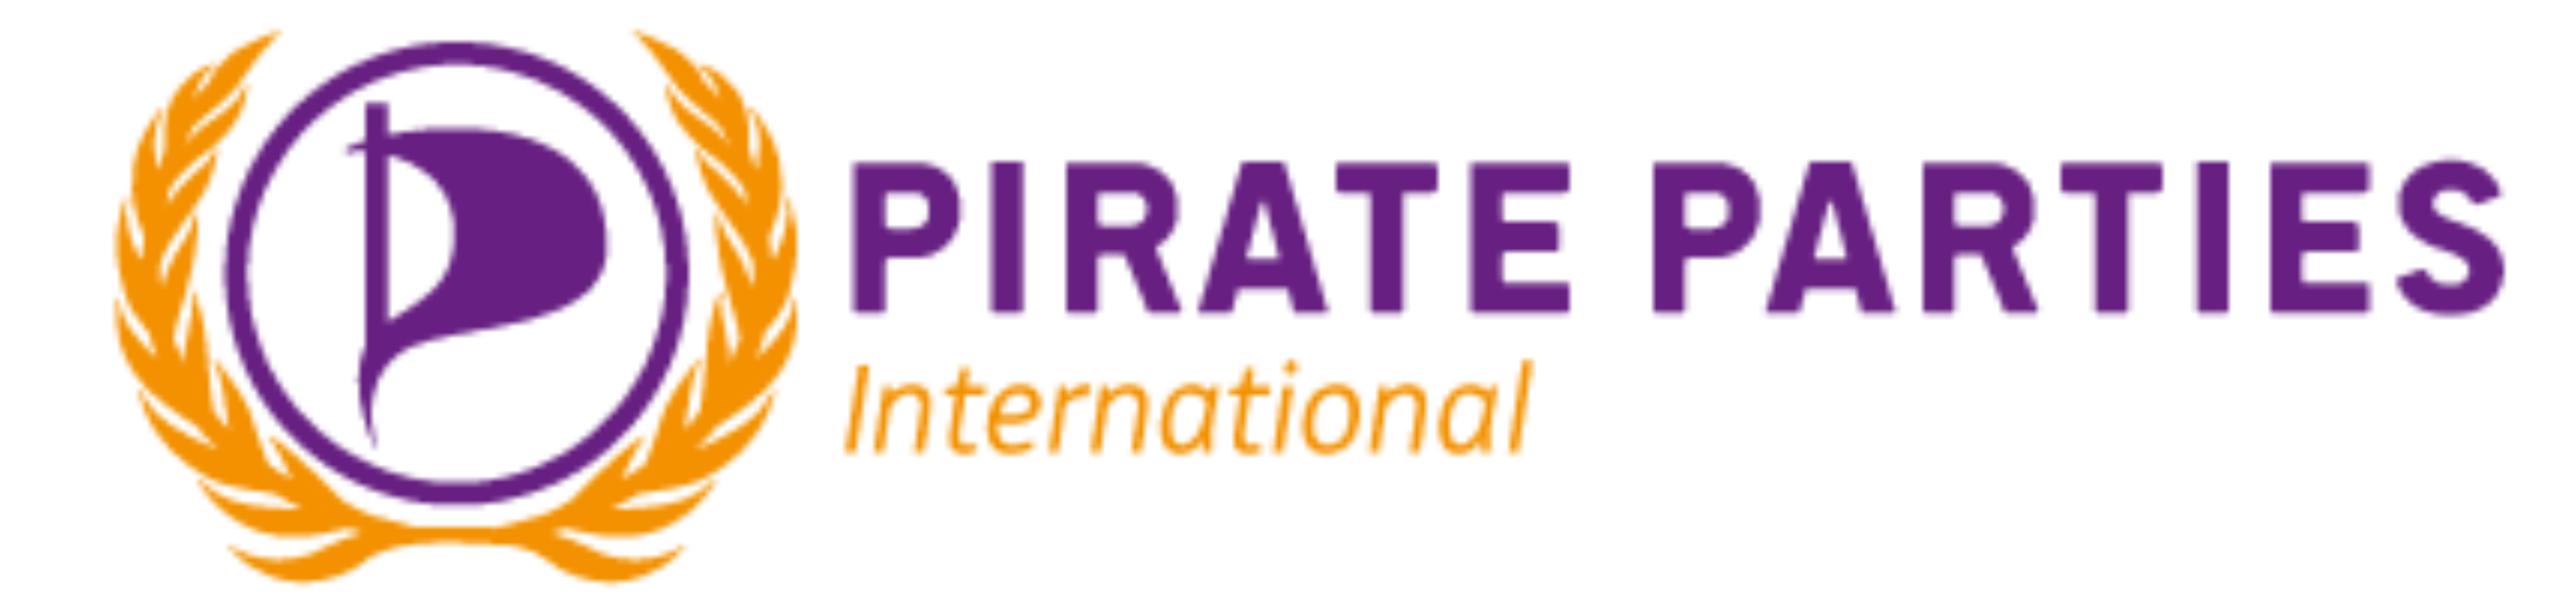 Pirate Party Netherlands Kickstarts National Campaign With Huge Festival | Pirate Parties International